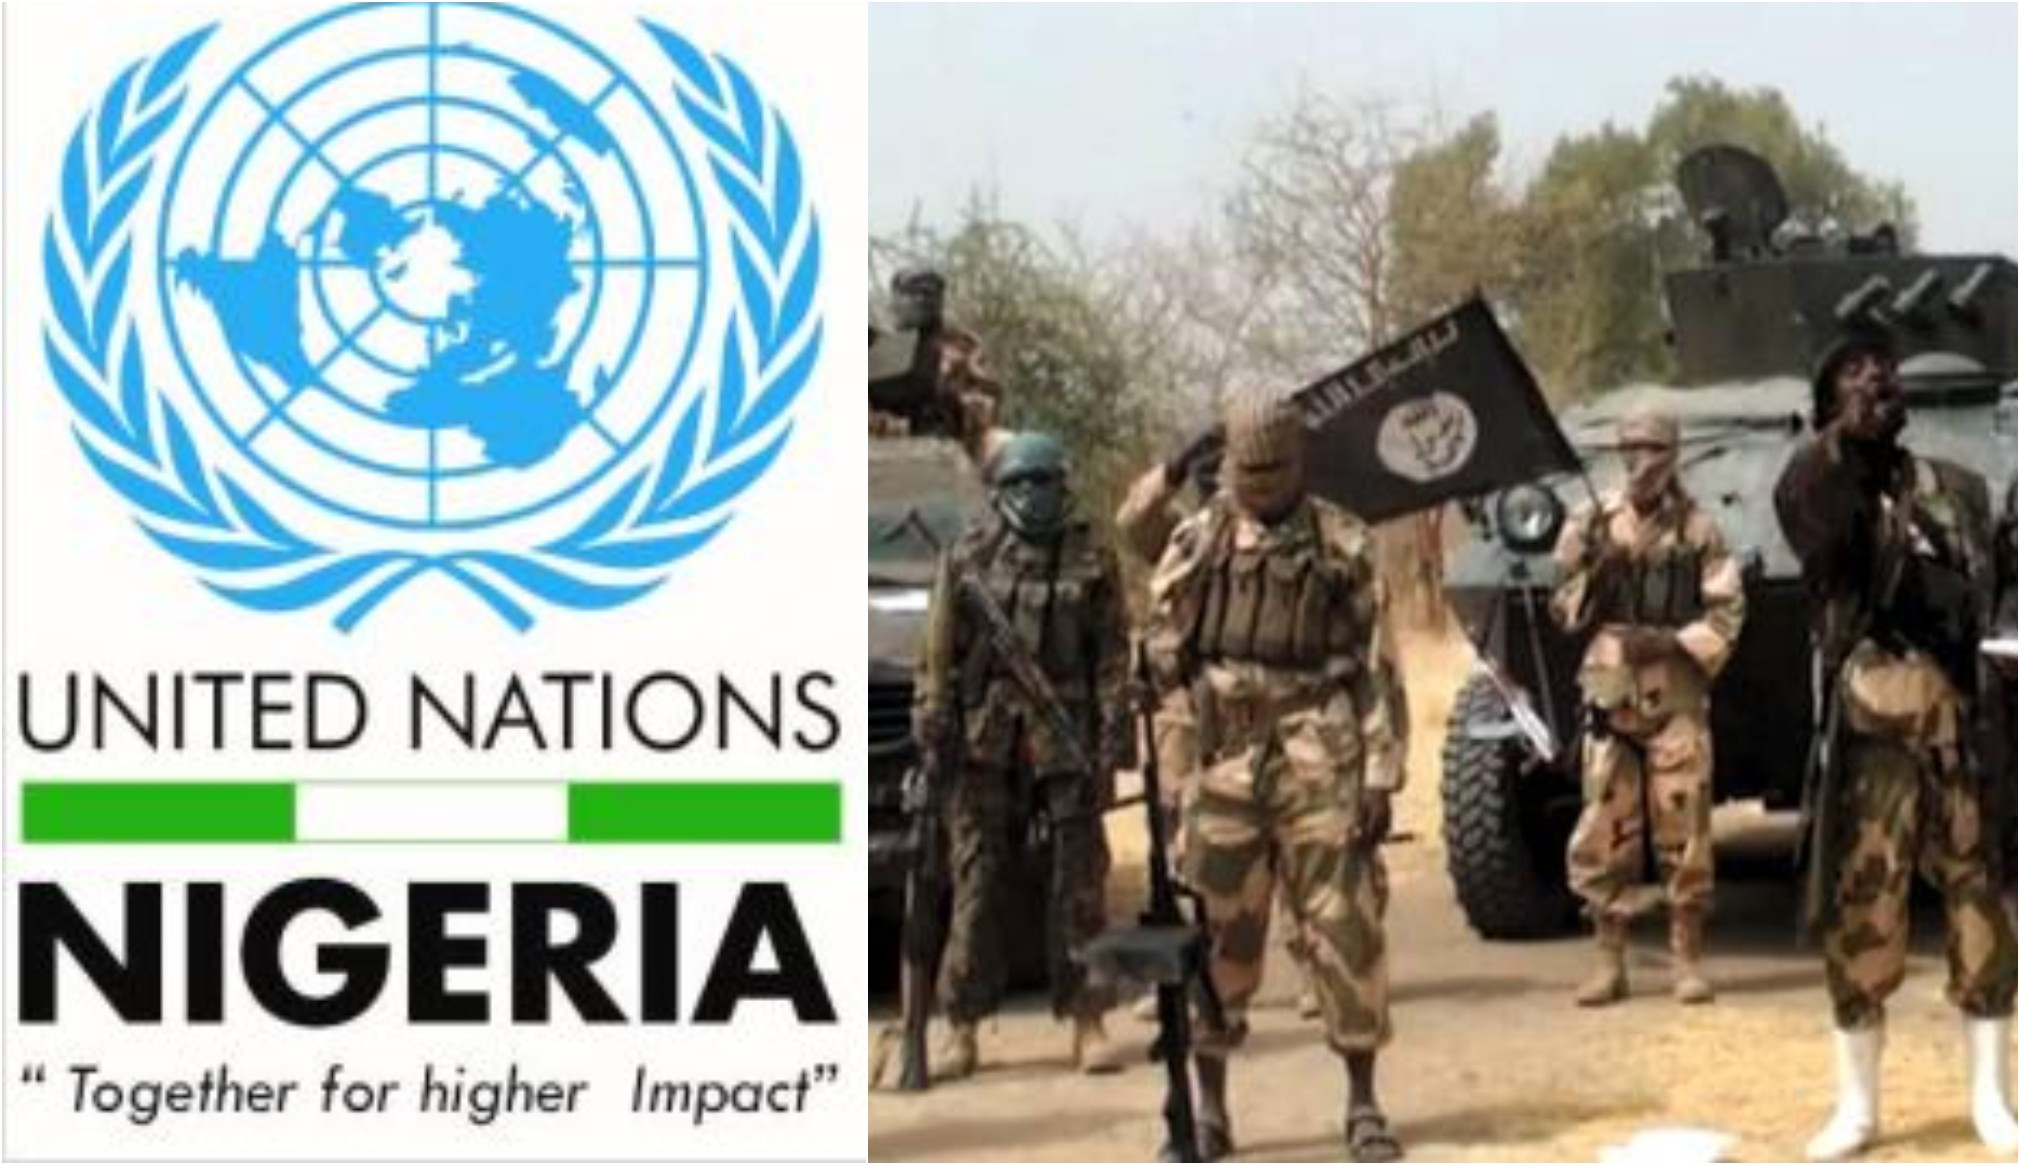 Boko Haram insurgents have more checkpoints in the North-East now - UN lindaikejisblog